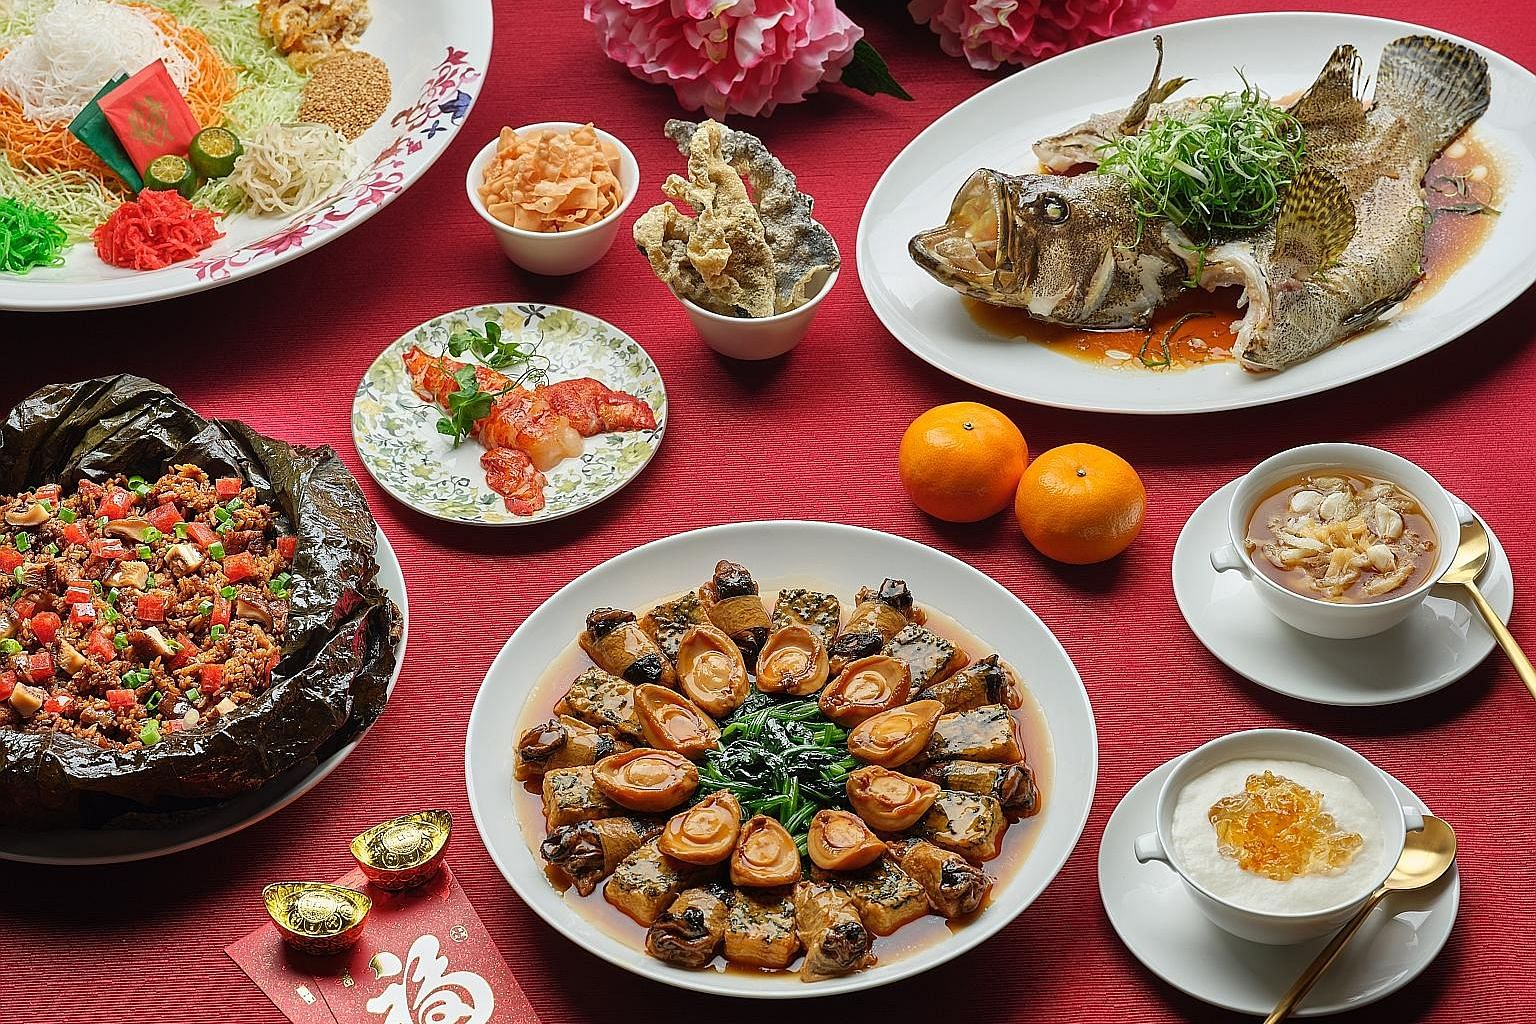 Between Jan 28 and 30, and again between Feb 1 and 5, you can enjoy a Chinese New Year feast at Capitol Theatre. The menu is designed by the culinary team of Capitol Kempinski Hotel Singapore.